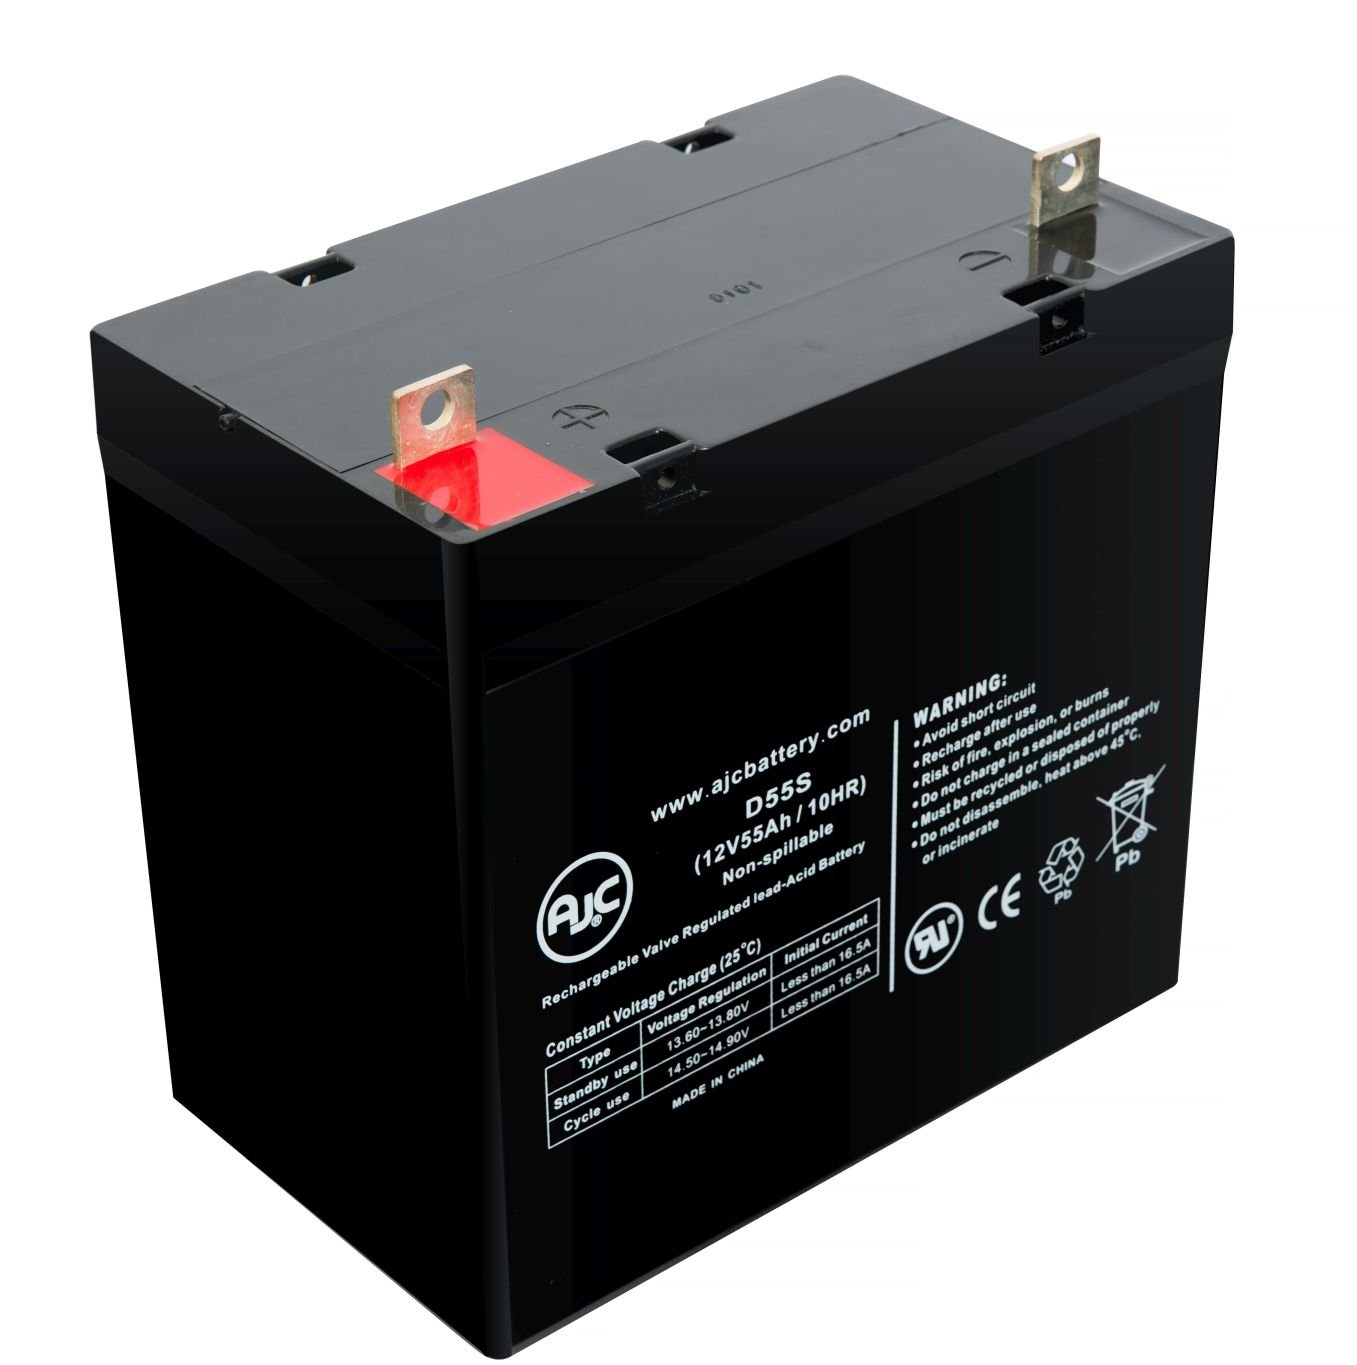 Long Way LW-6FM55G Sealed Lead Acid - AGM - VRLA Battery - This is an AJC Brand Replacement